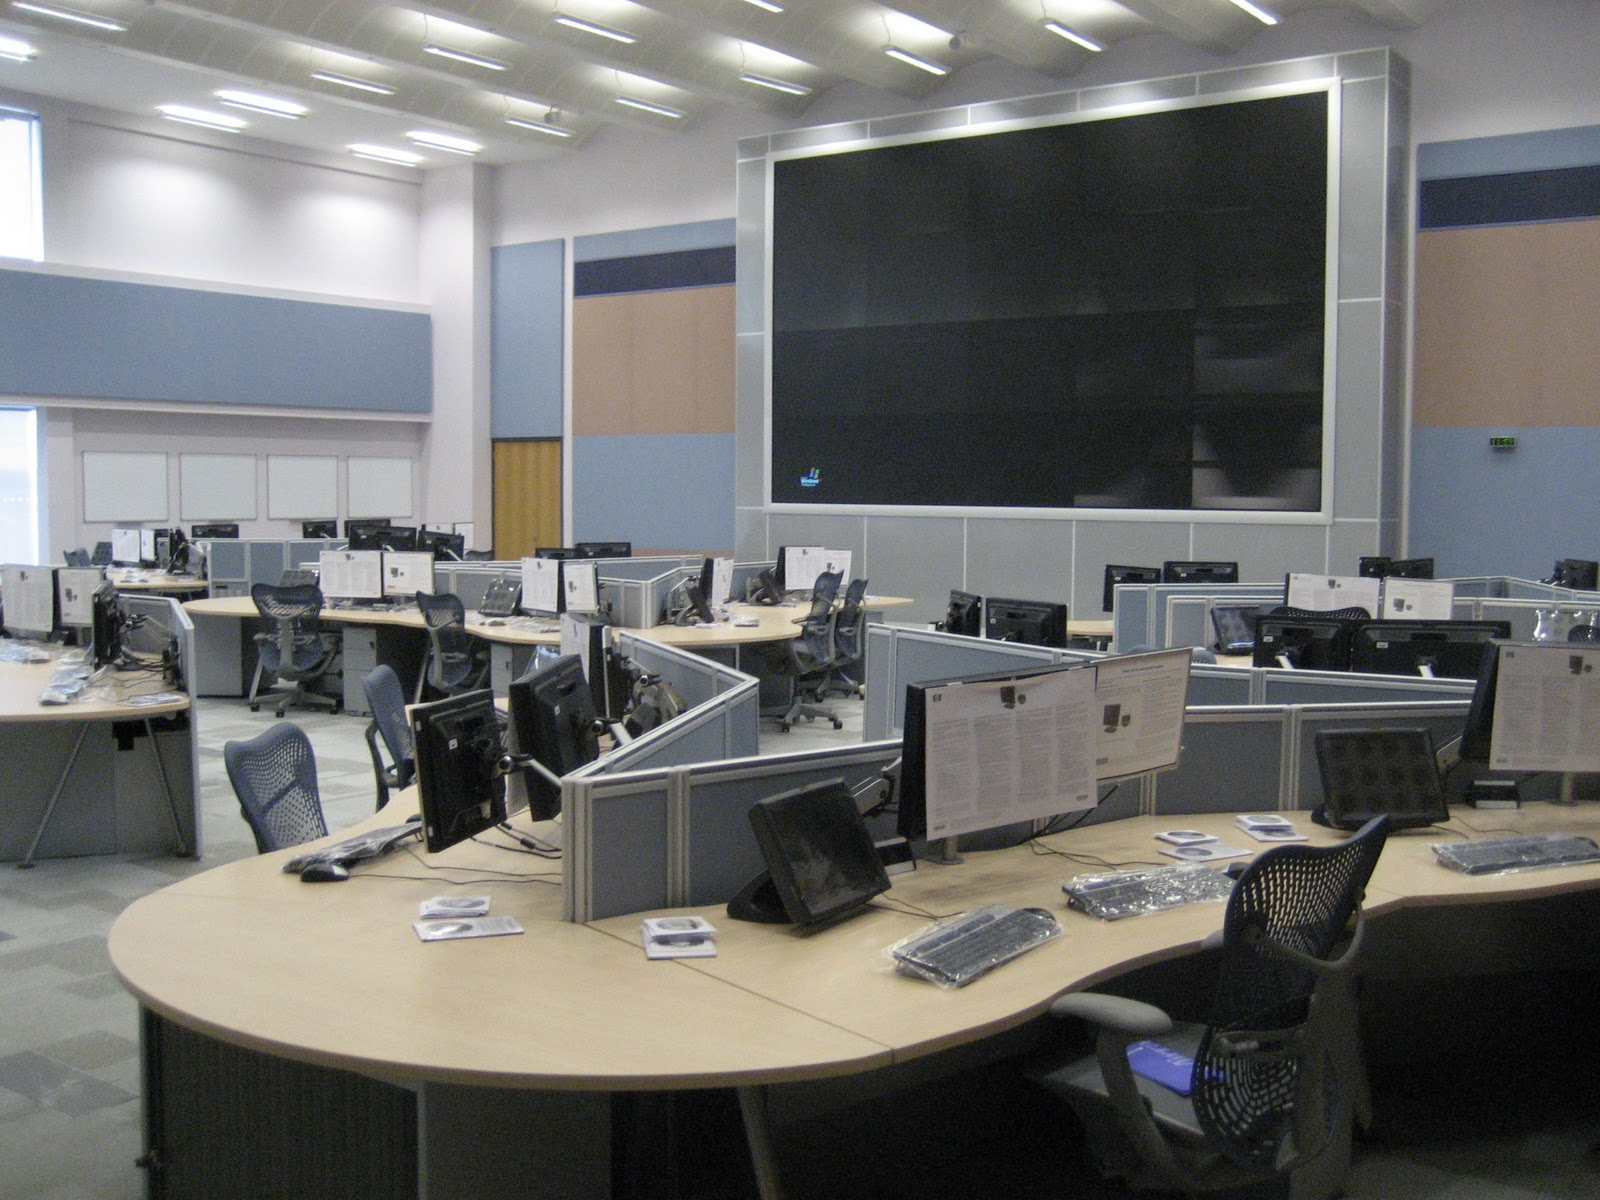 What Is The Future For Fire Rescue Service Control Rooms